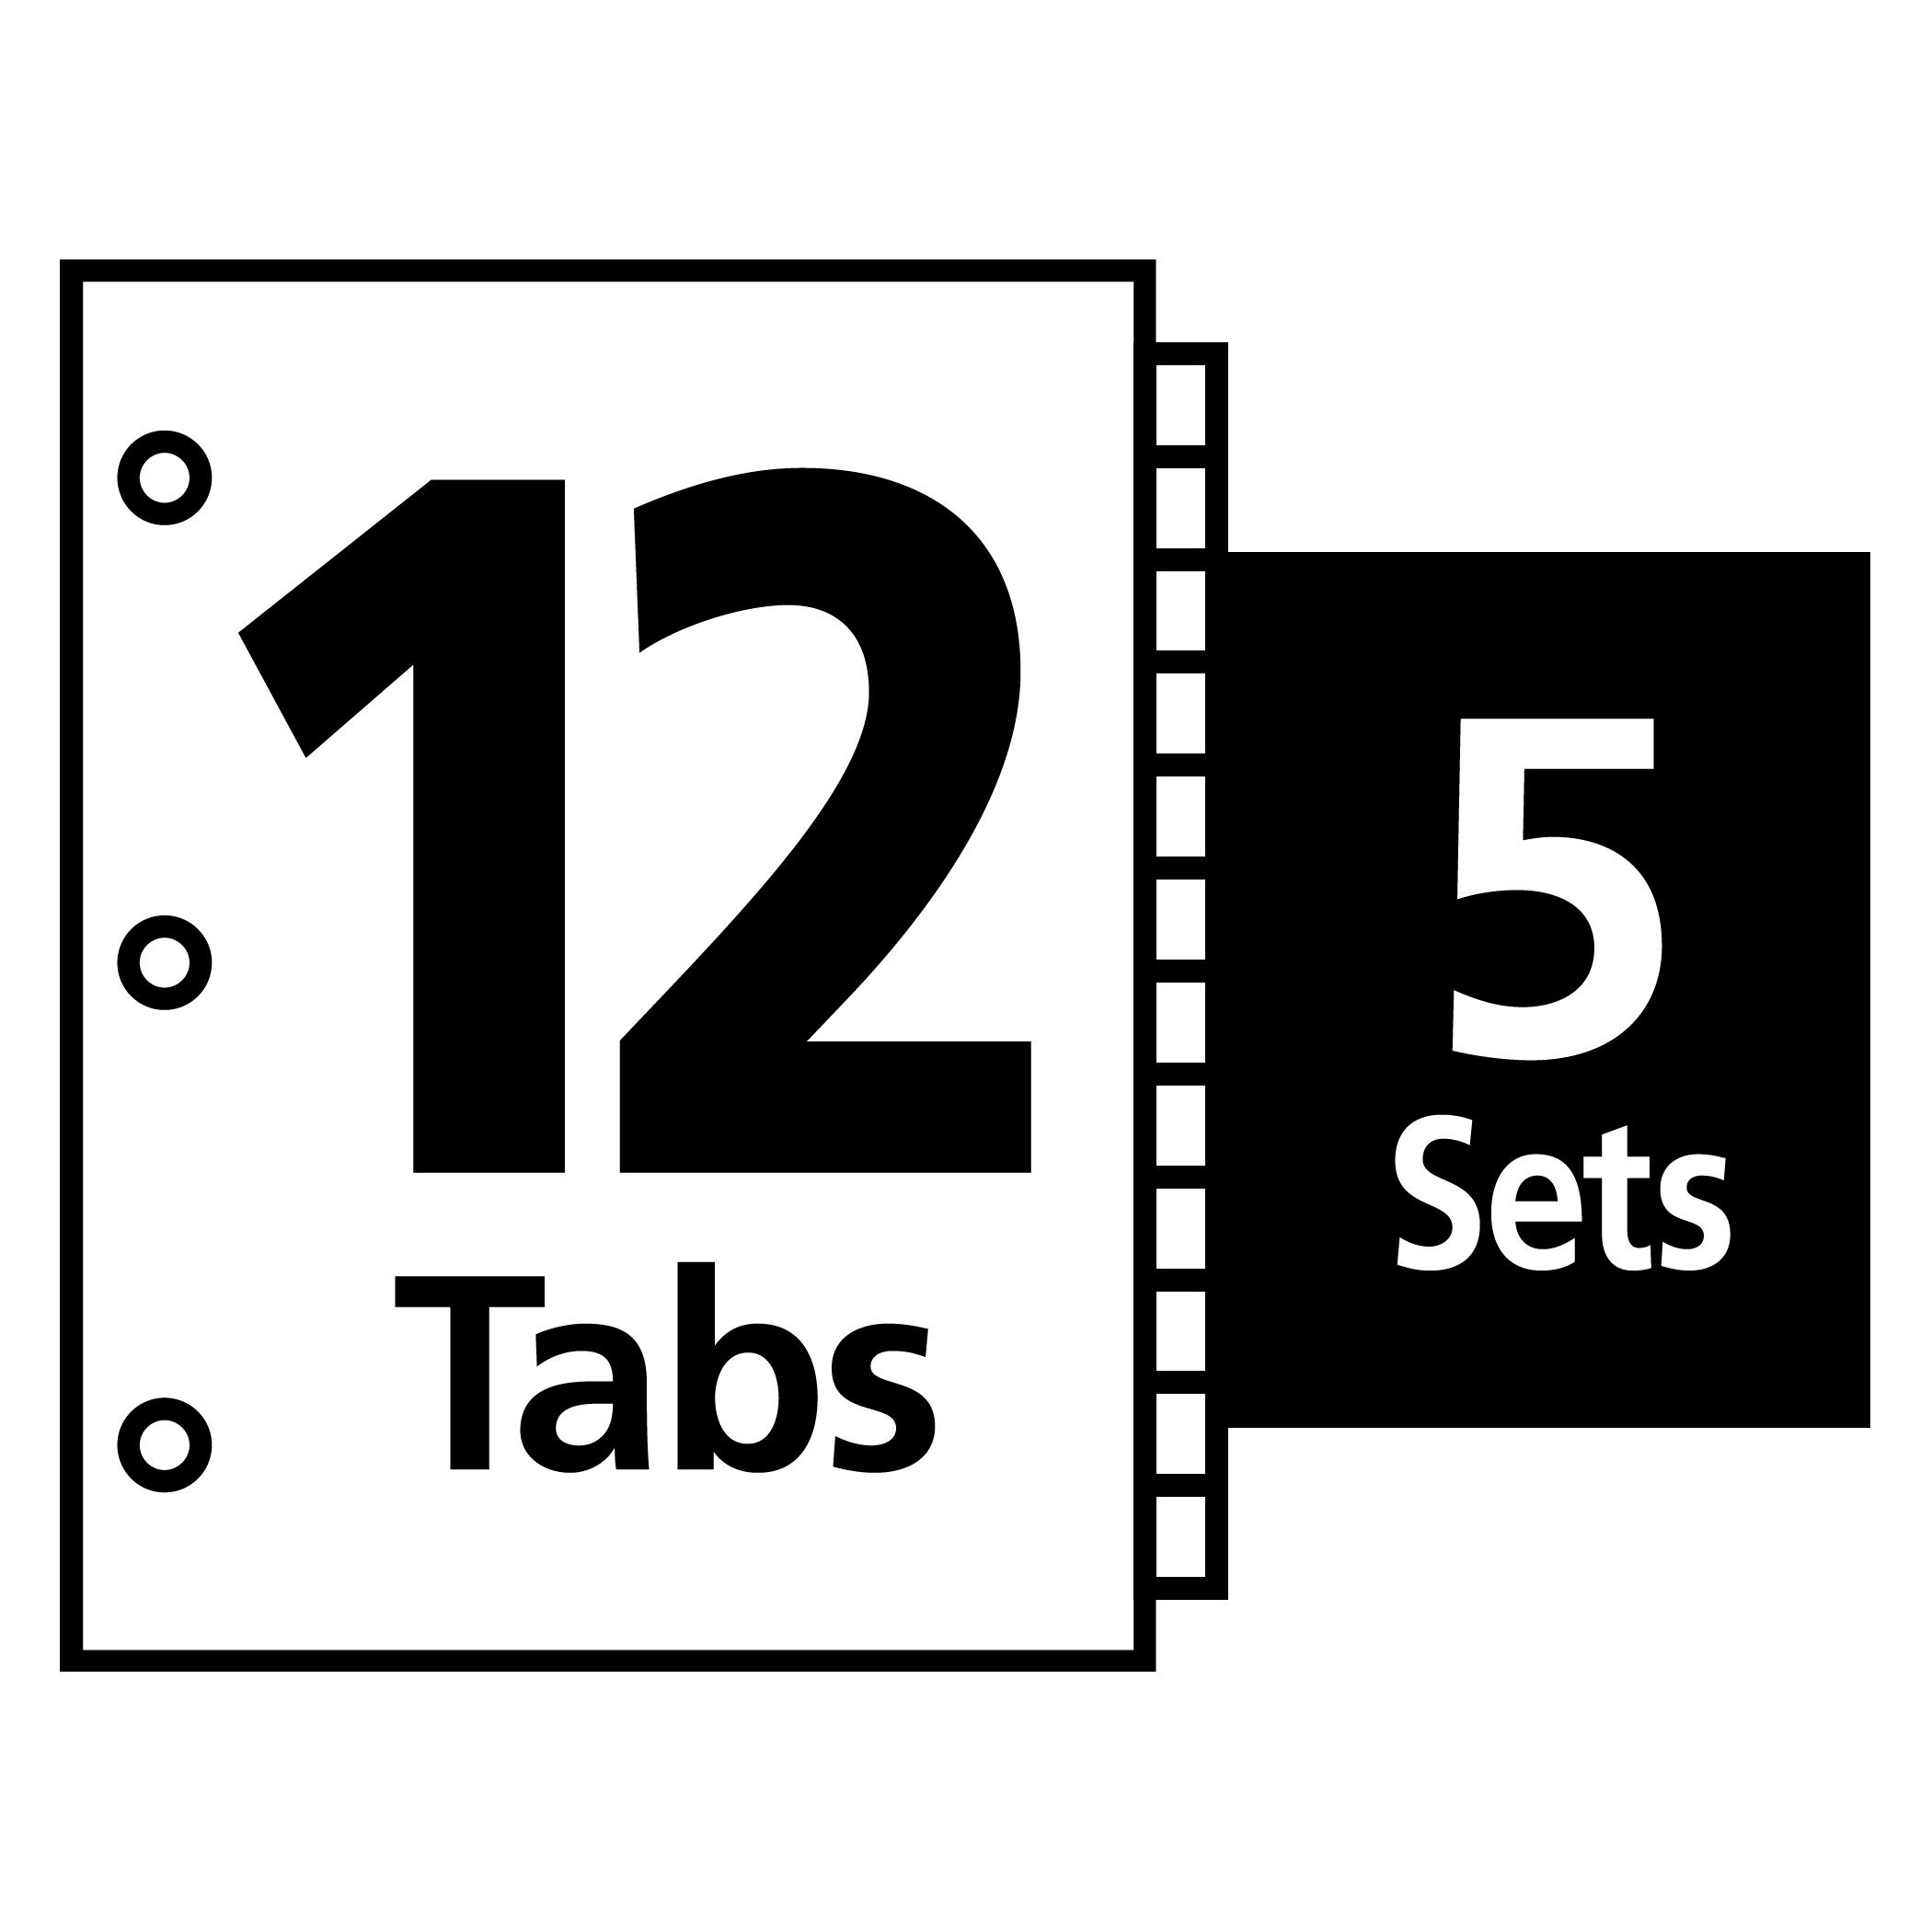 Avery Index Maker Clear Label 8-12 x 11 Inches Dividers with 12 White Tabs, 5 Pack (11429) by Avery (Image #3)